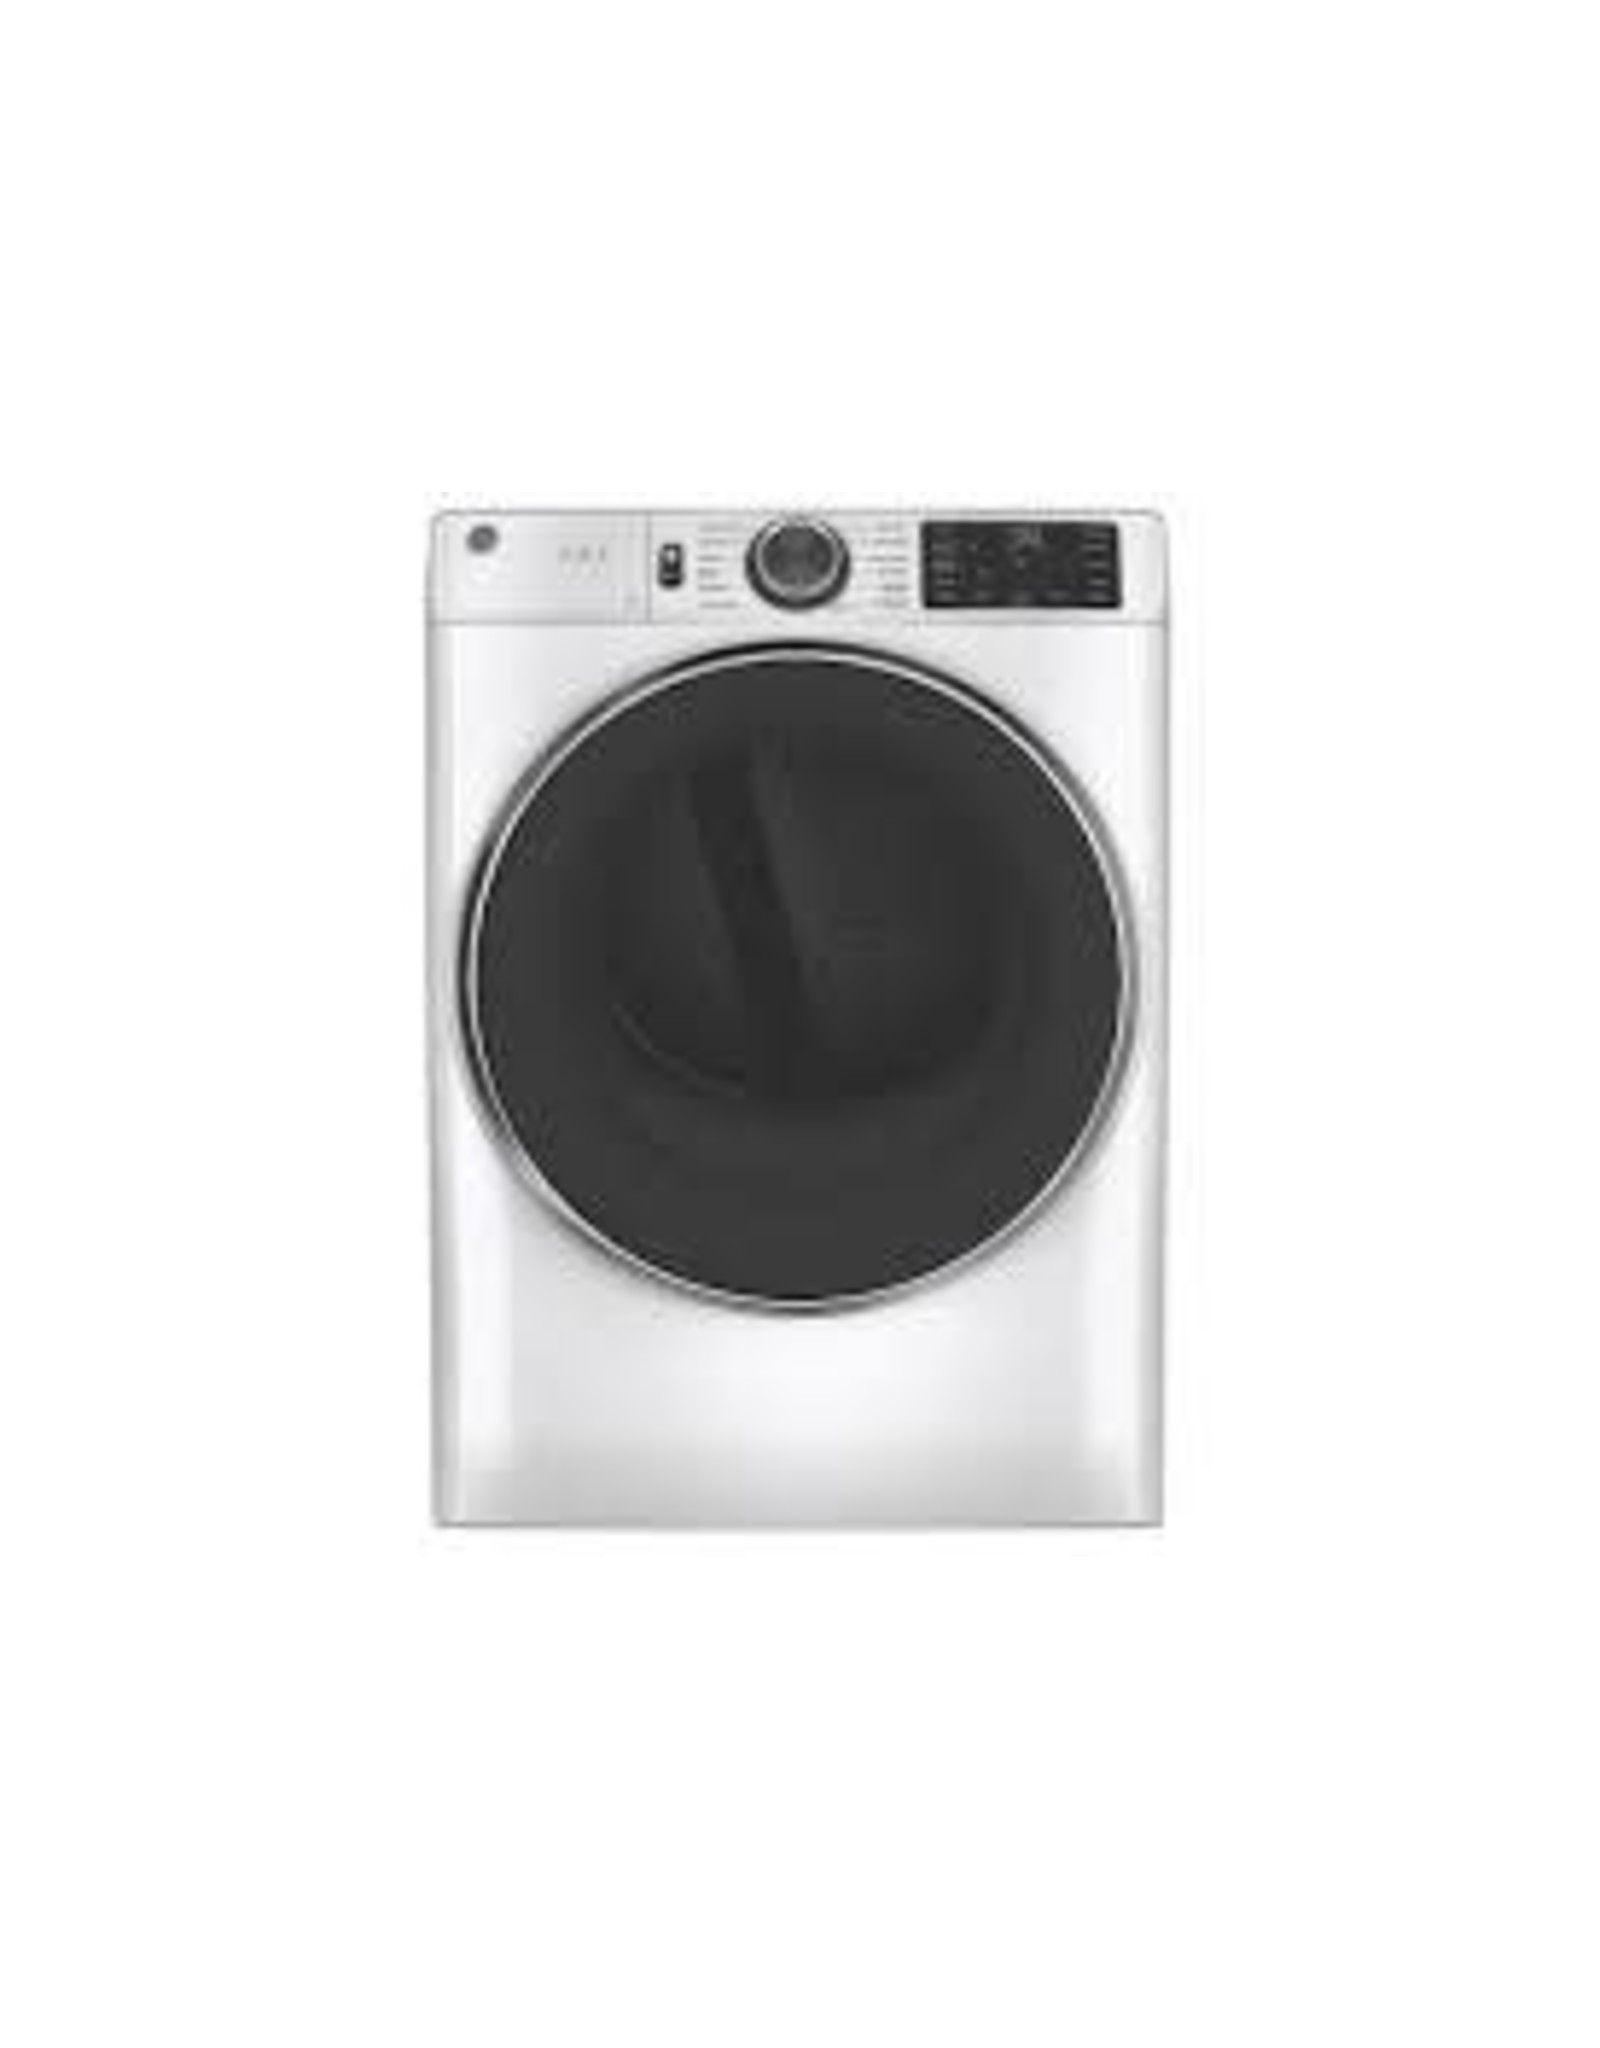 GE GFD65ESSNWW 7.8 cu. ft. Smart 240-Volt White Stackable Electric Vented Dryer with Steam and Sanitize Cycle, ENERGY STAR